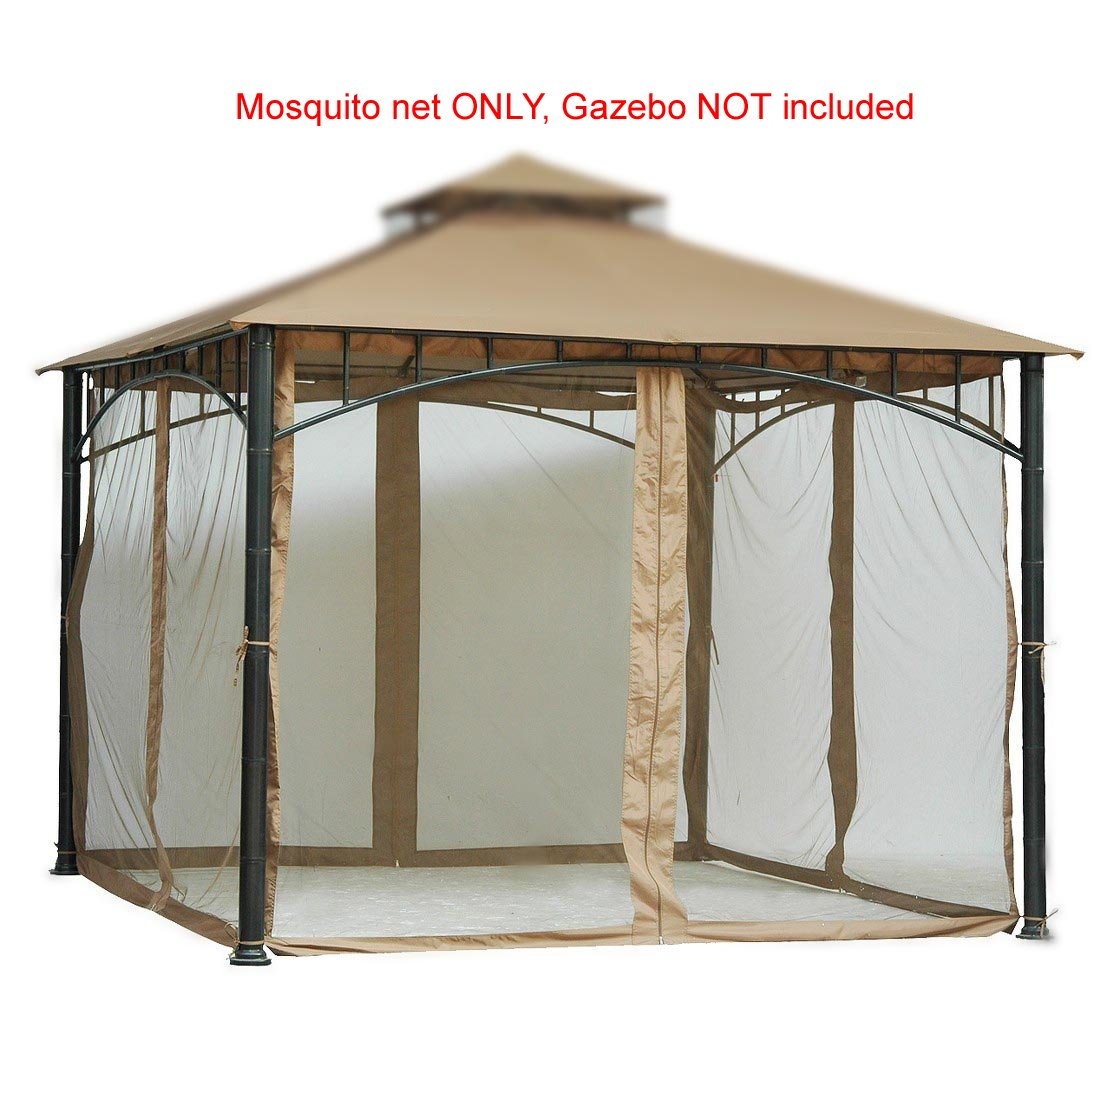 Replacement Mosquito Netting for Gazebo Size 10ft x 10 ft (Gazebo Mosquito Net Only) by PierSurplus (Image #5)